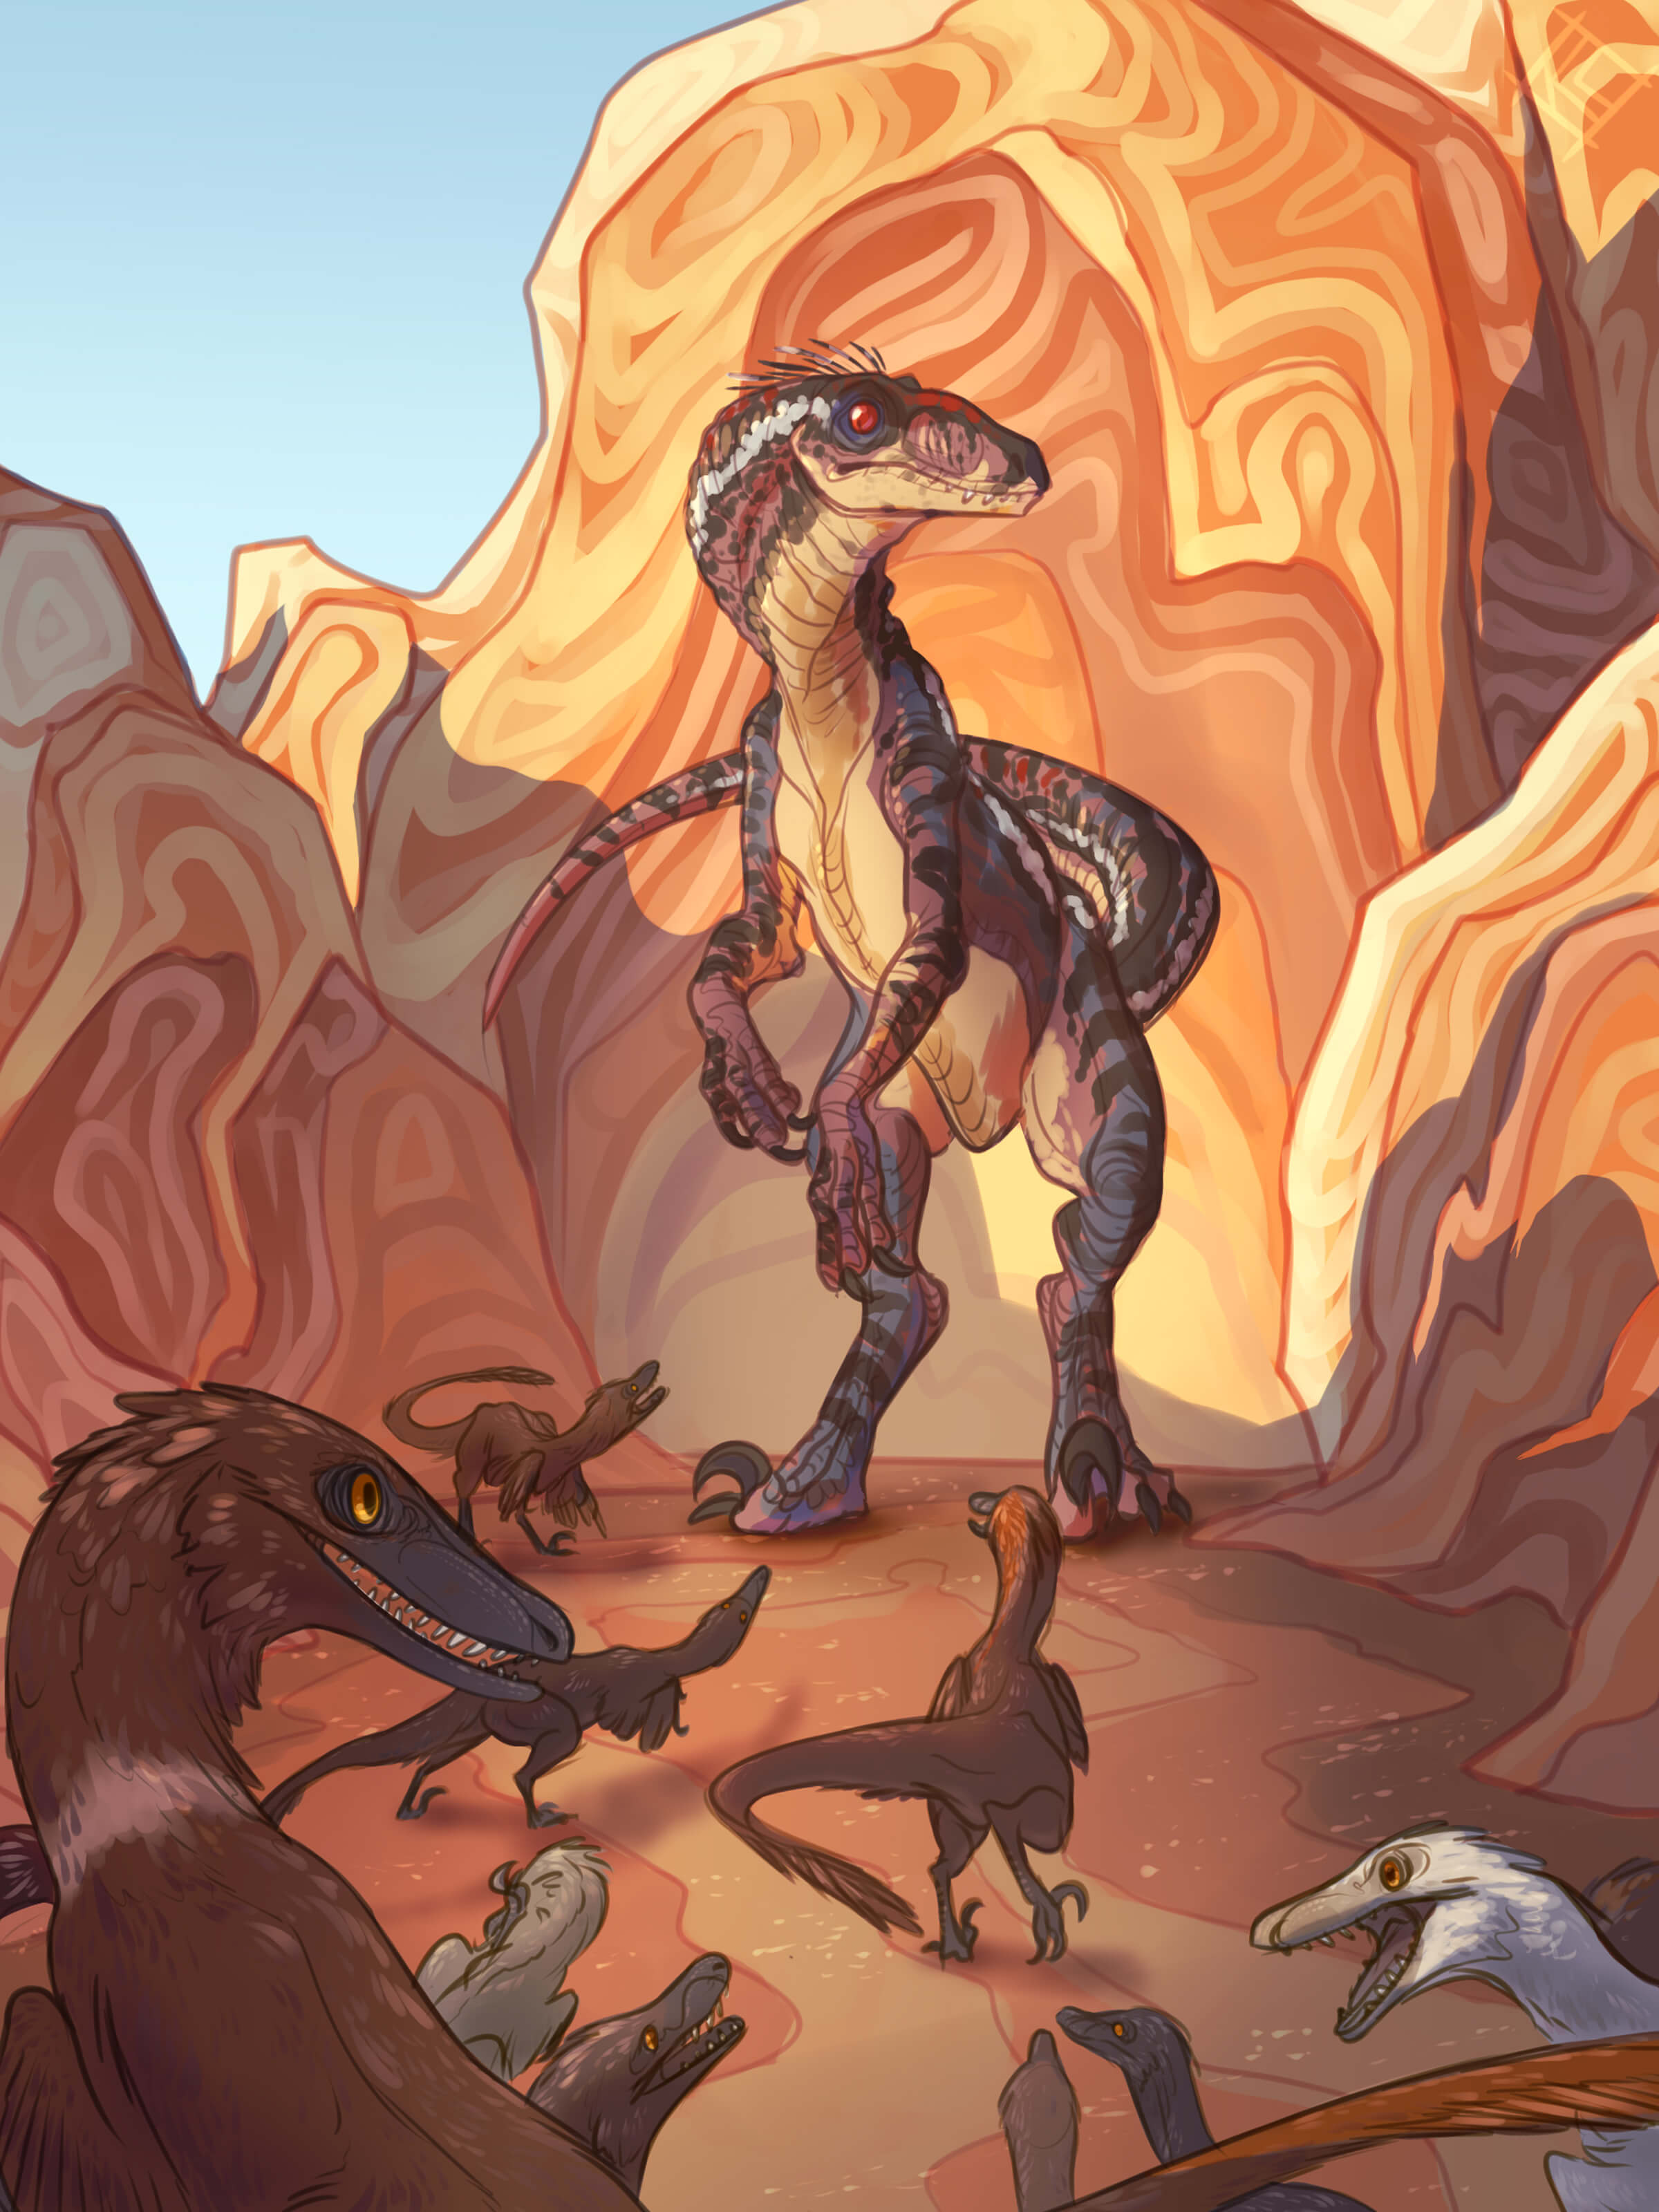 digital painting of dinosaurs surrounded by large orange-tinted rocks